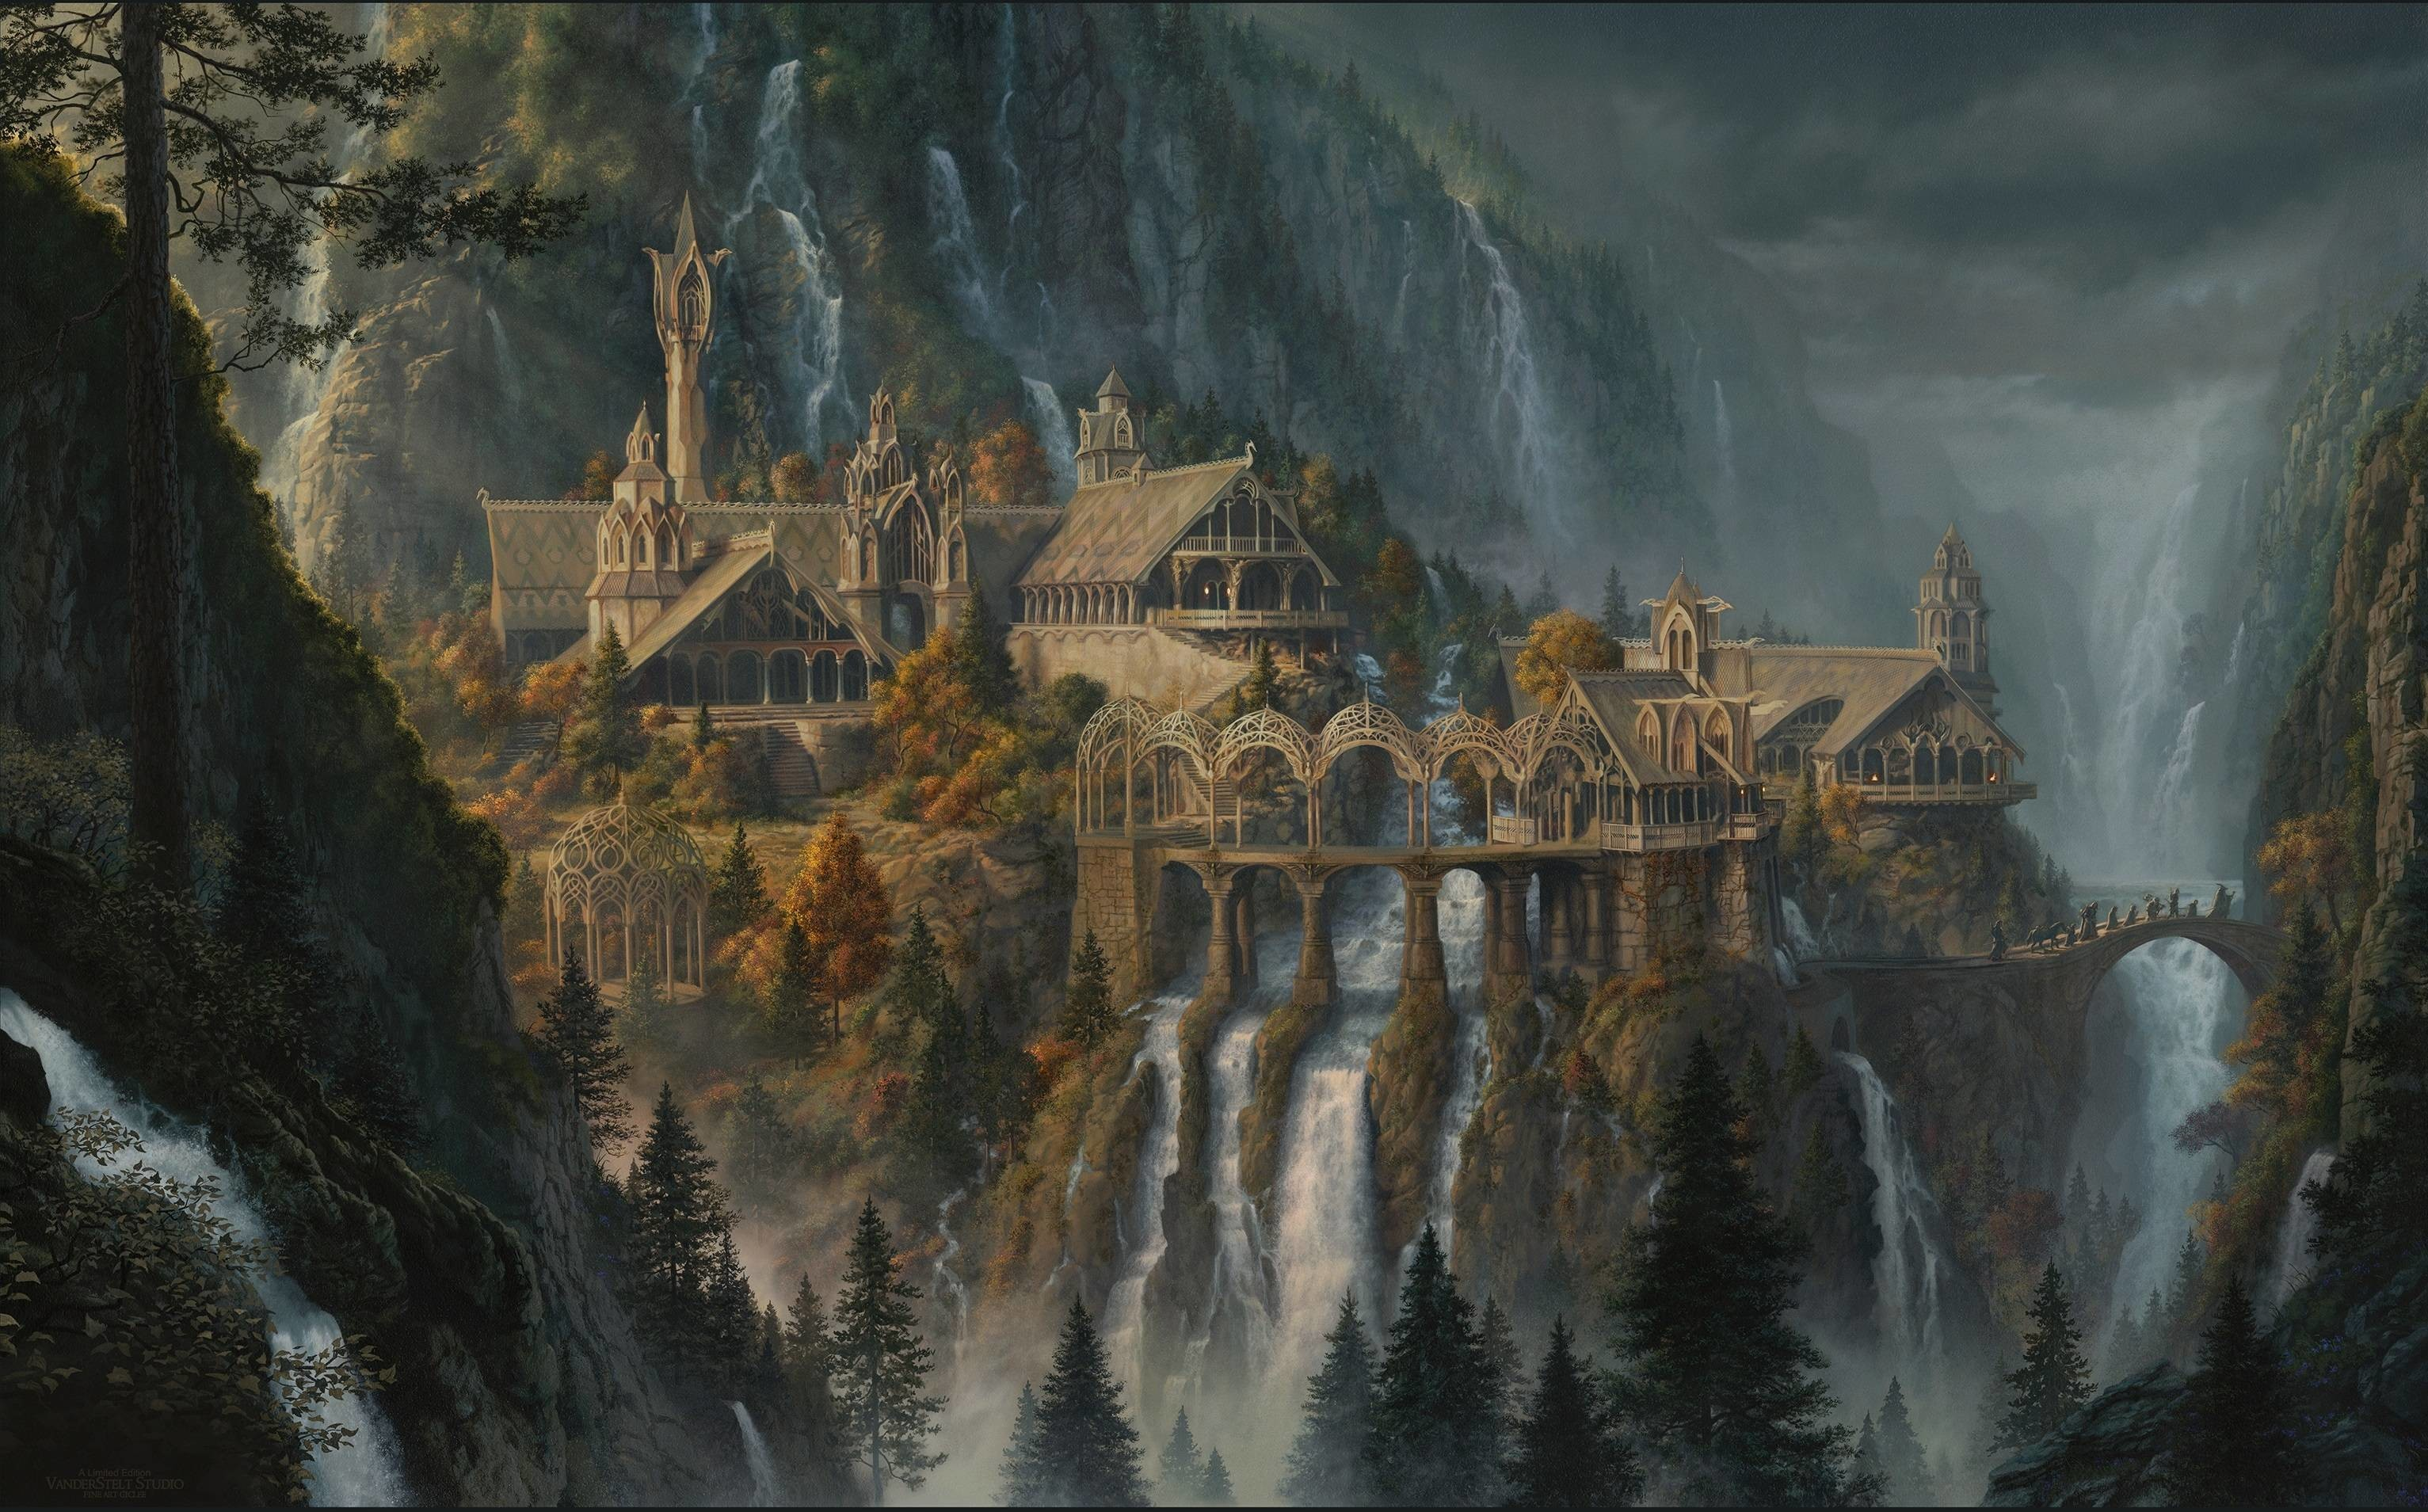 lord of the rings background music free download